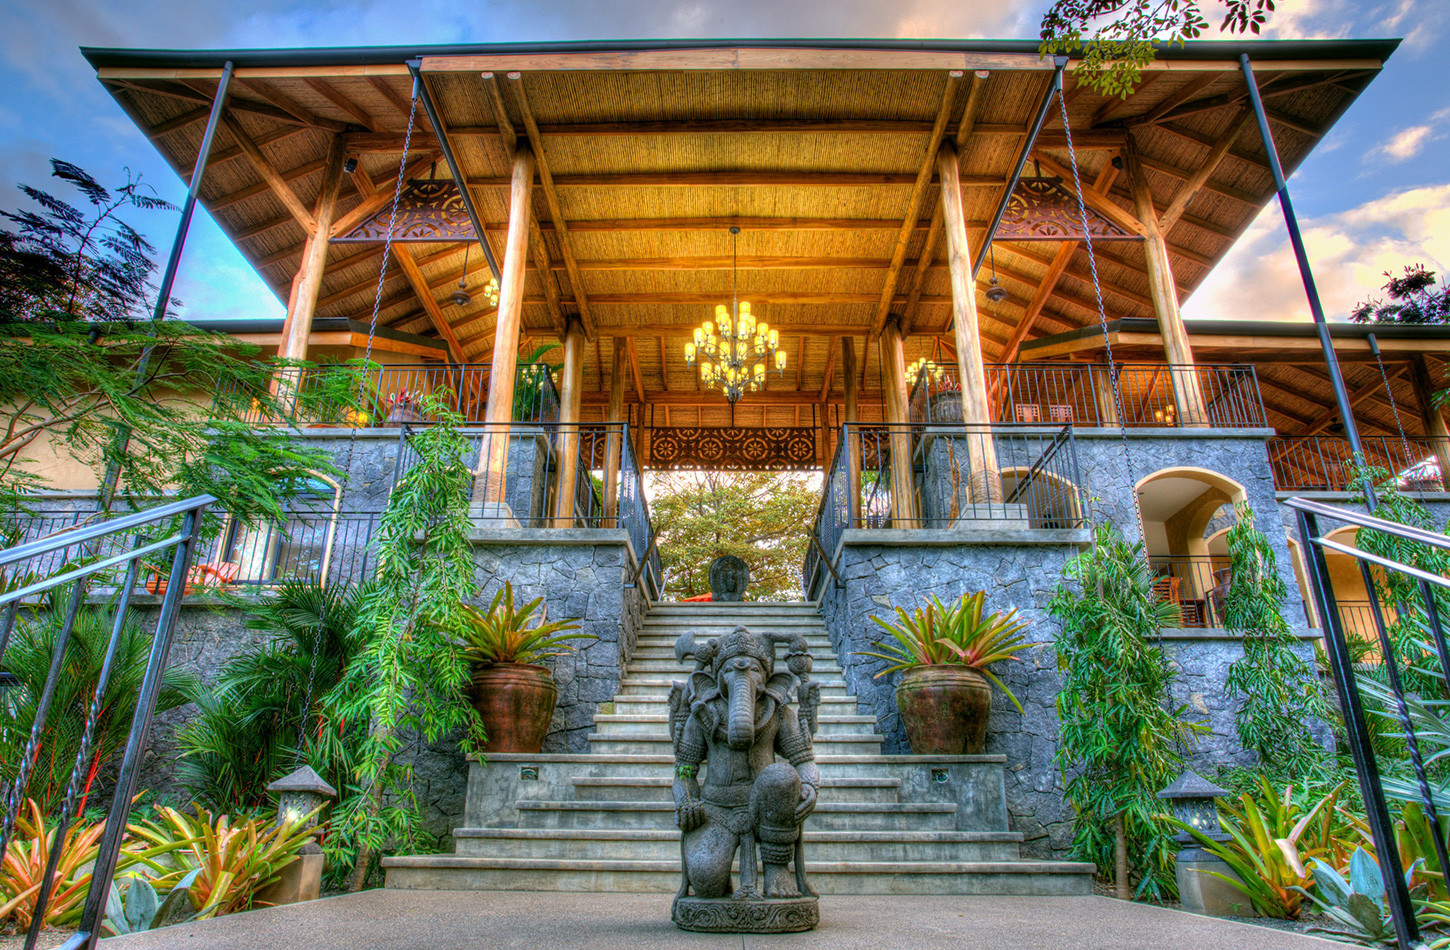 Bodhi TreeYOGA Resort - High-end accommodations, superb dining experience, world class yoga and pilates studios, gym, spa, juice bar and boutique. Come visit us and discover Costa Rica's finest yoga resort and retreat sanctuary.